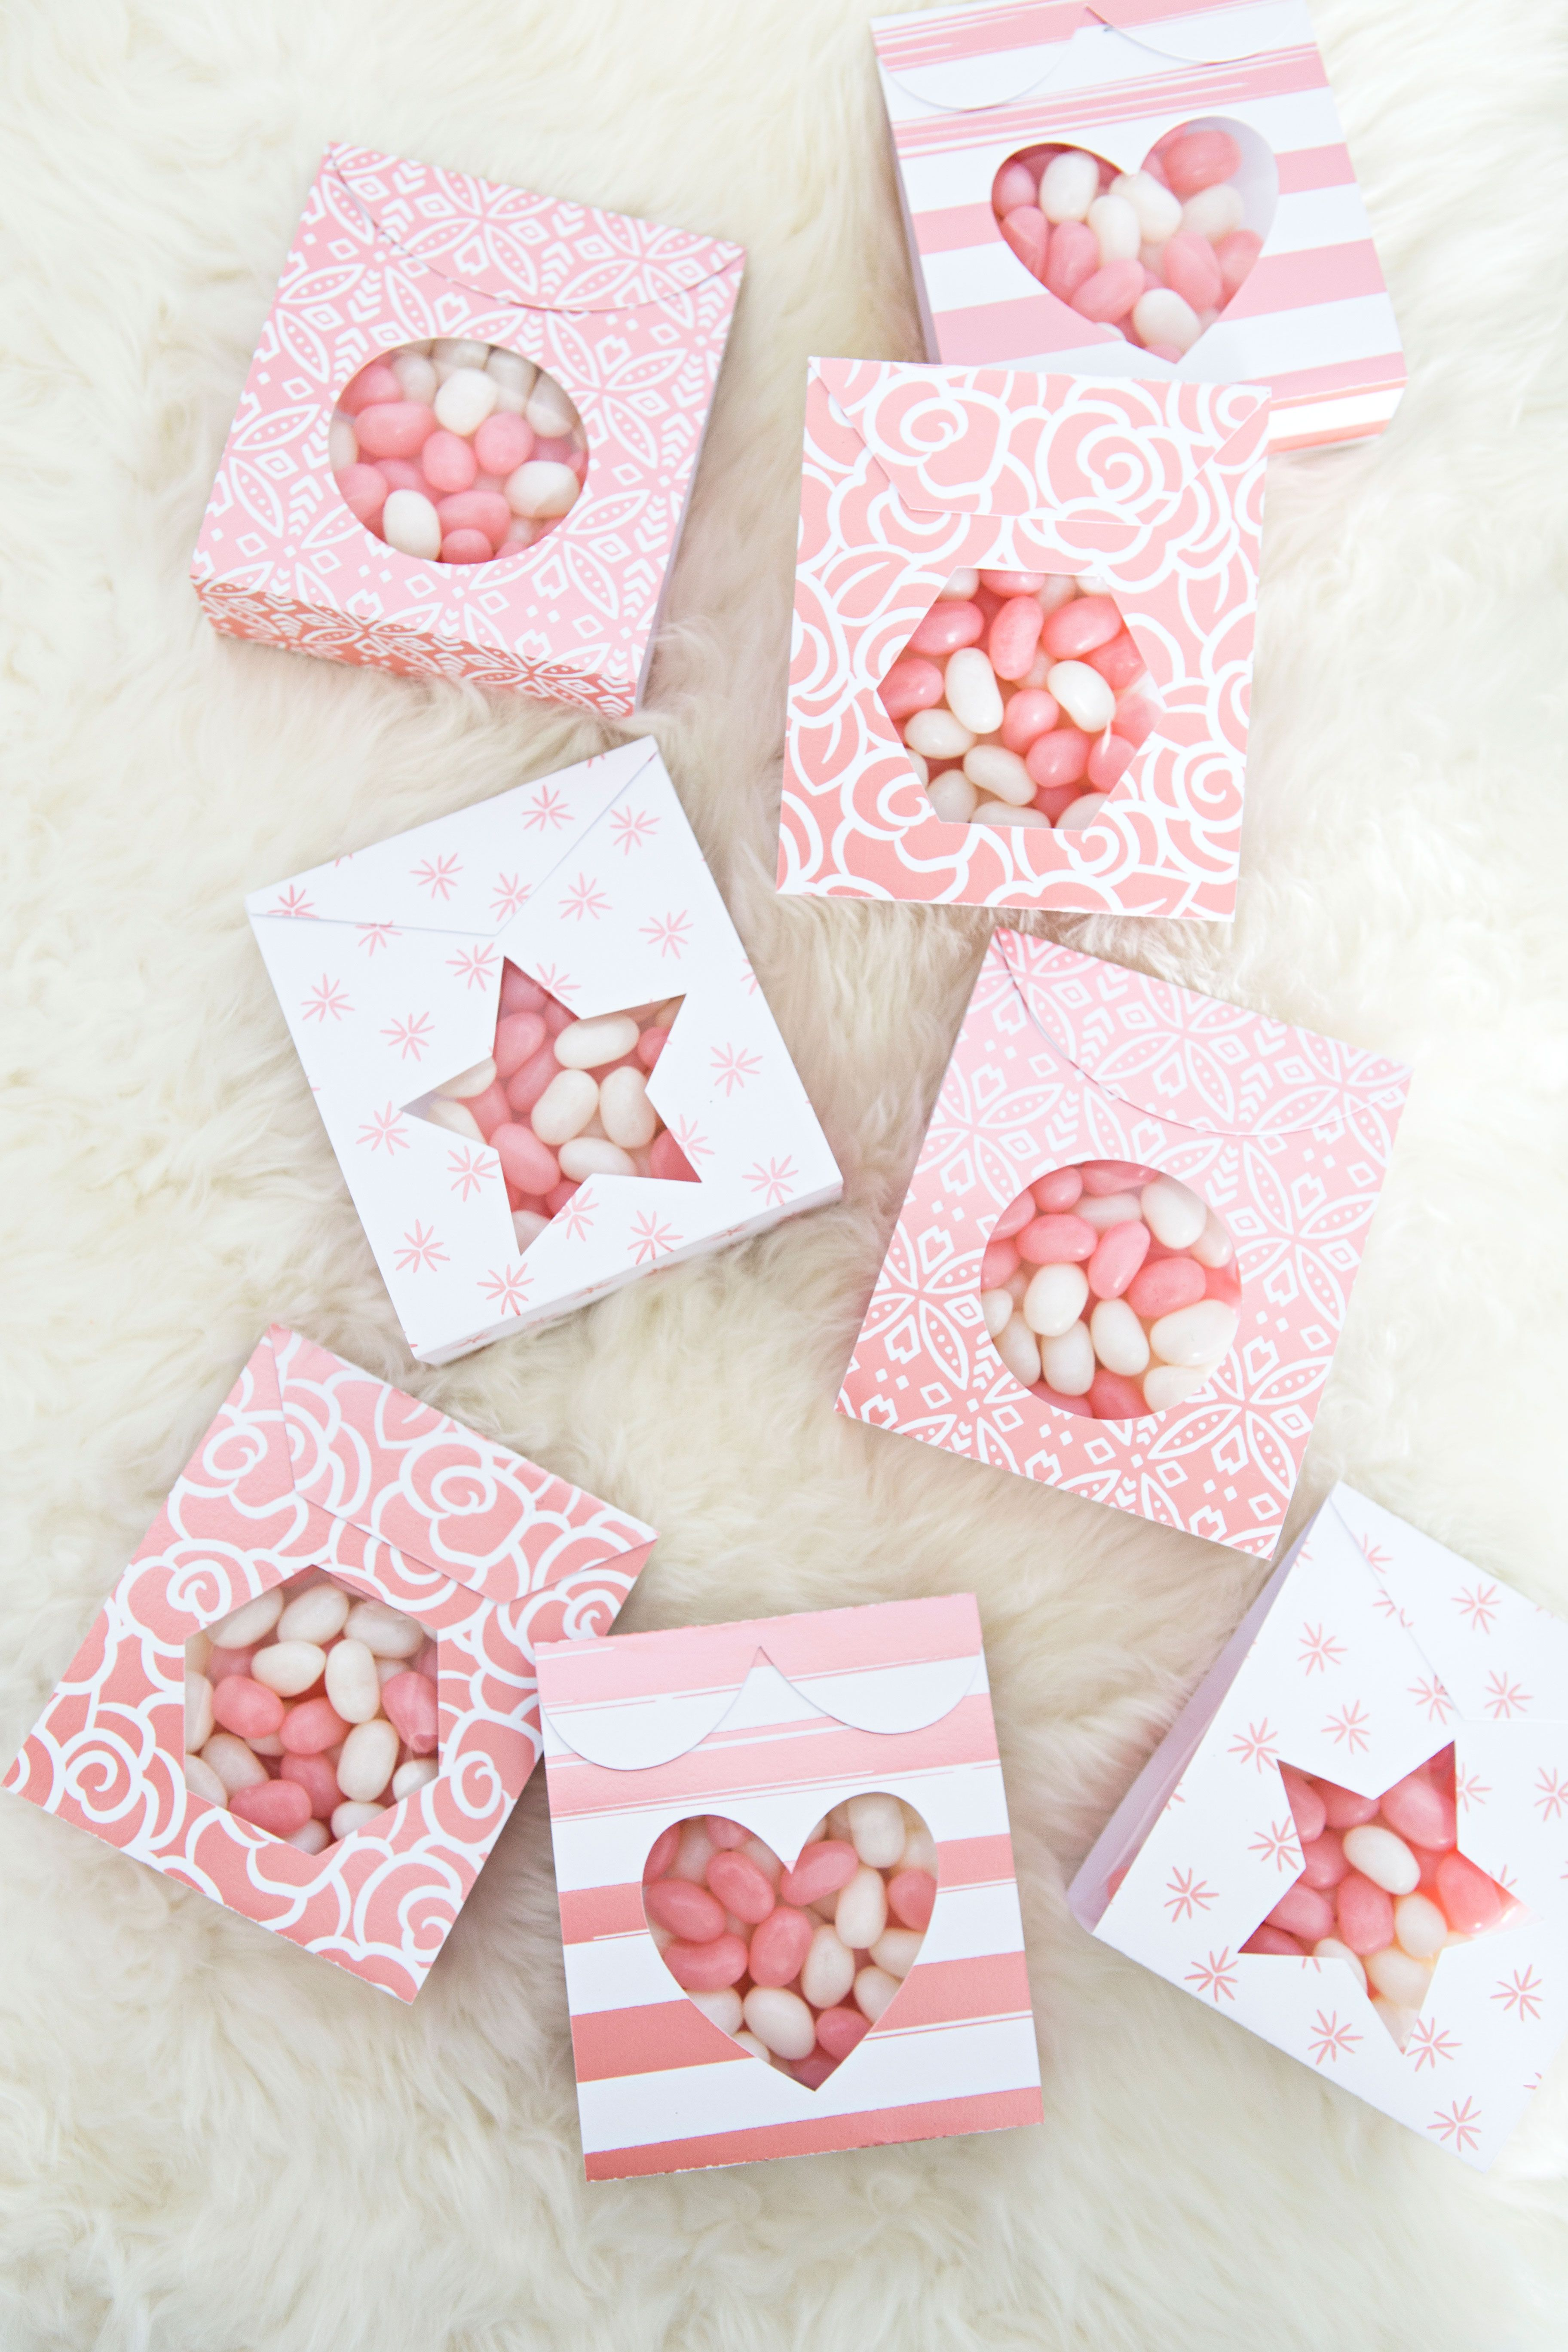 DIY Candy Pouch Favors Using Cricut Deluxe Paper Diy